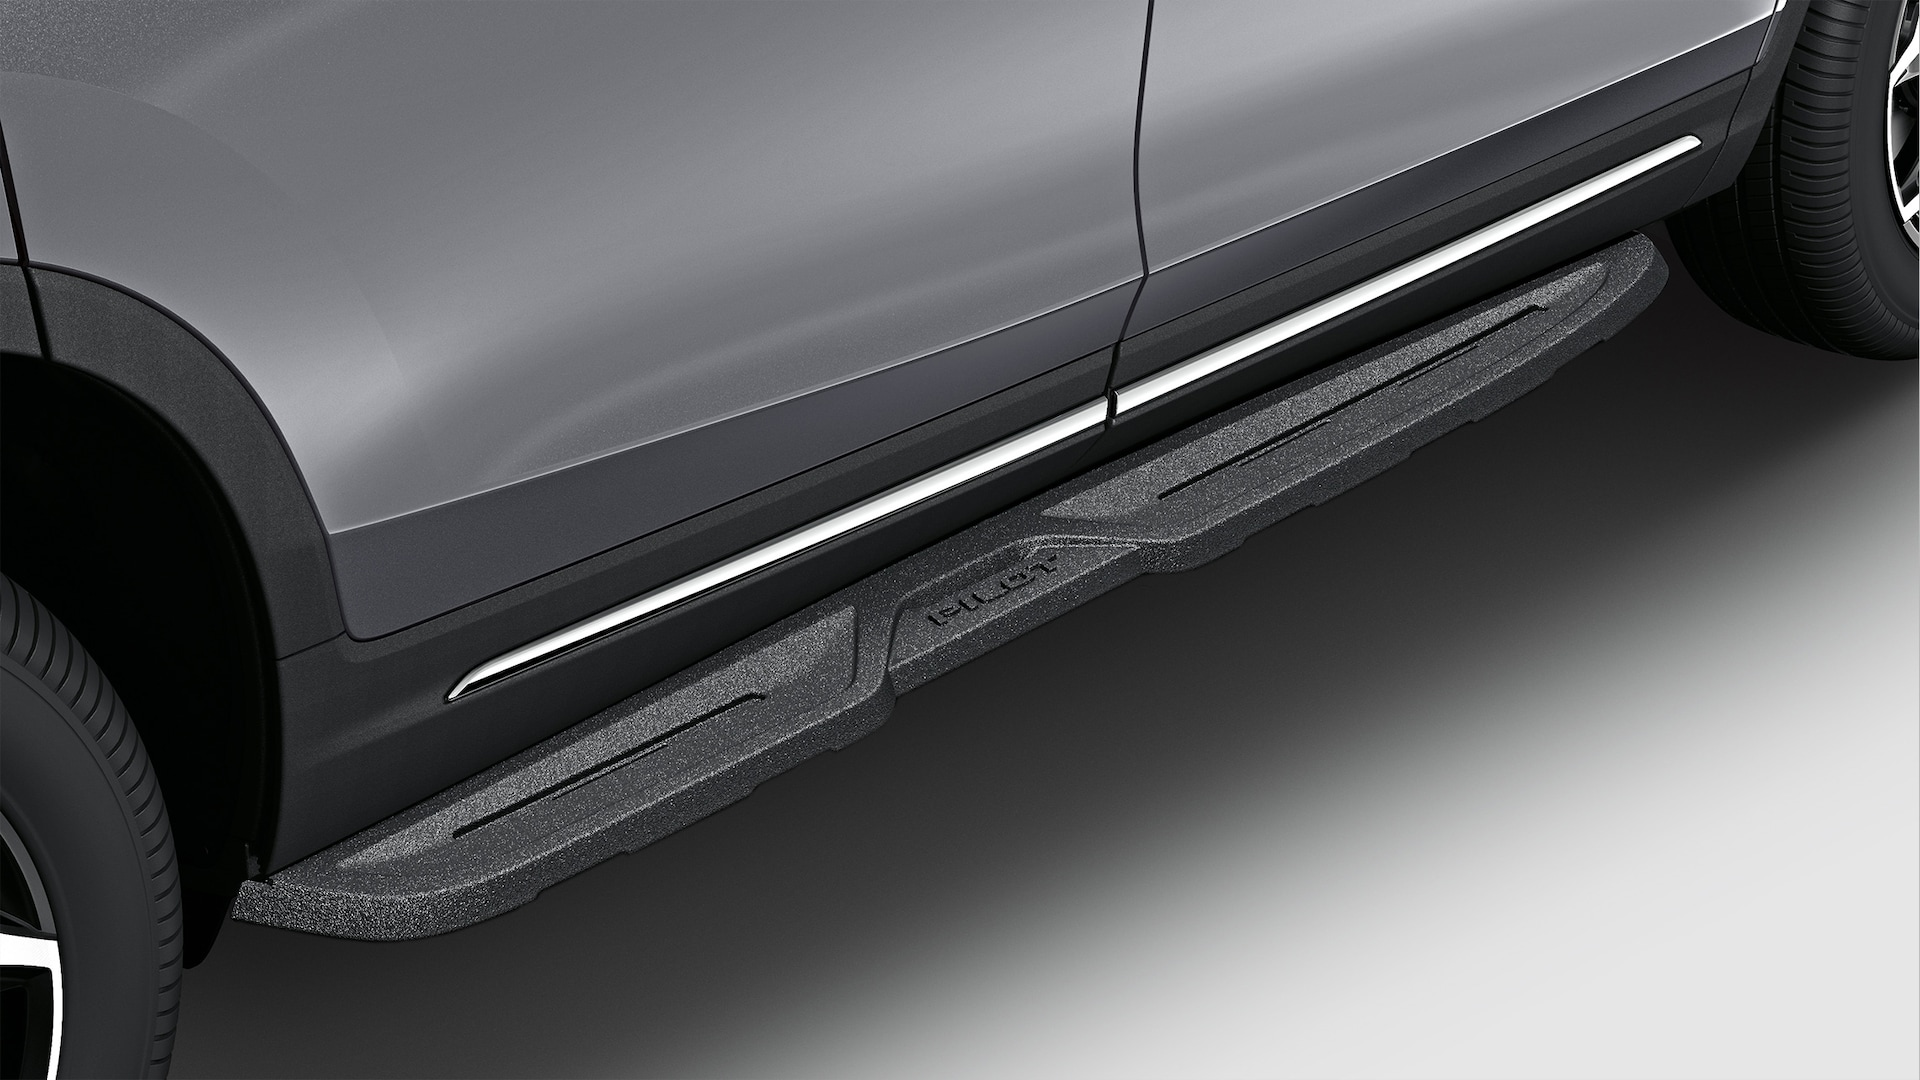 Die-Cast Running Board detail on 2021 Honda Pilot.